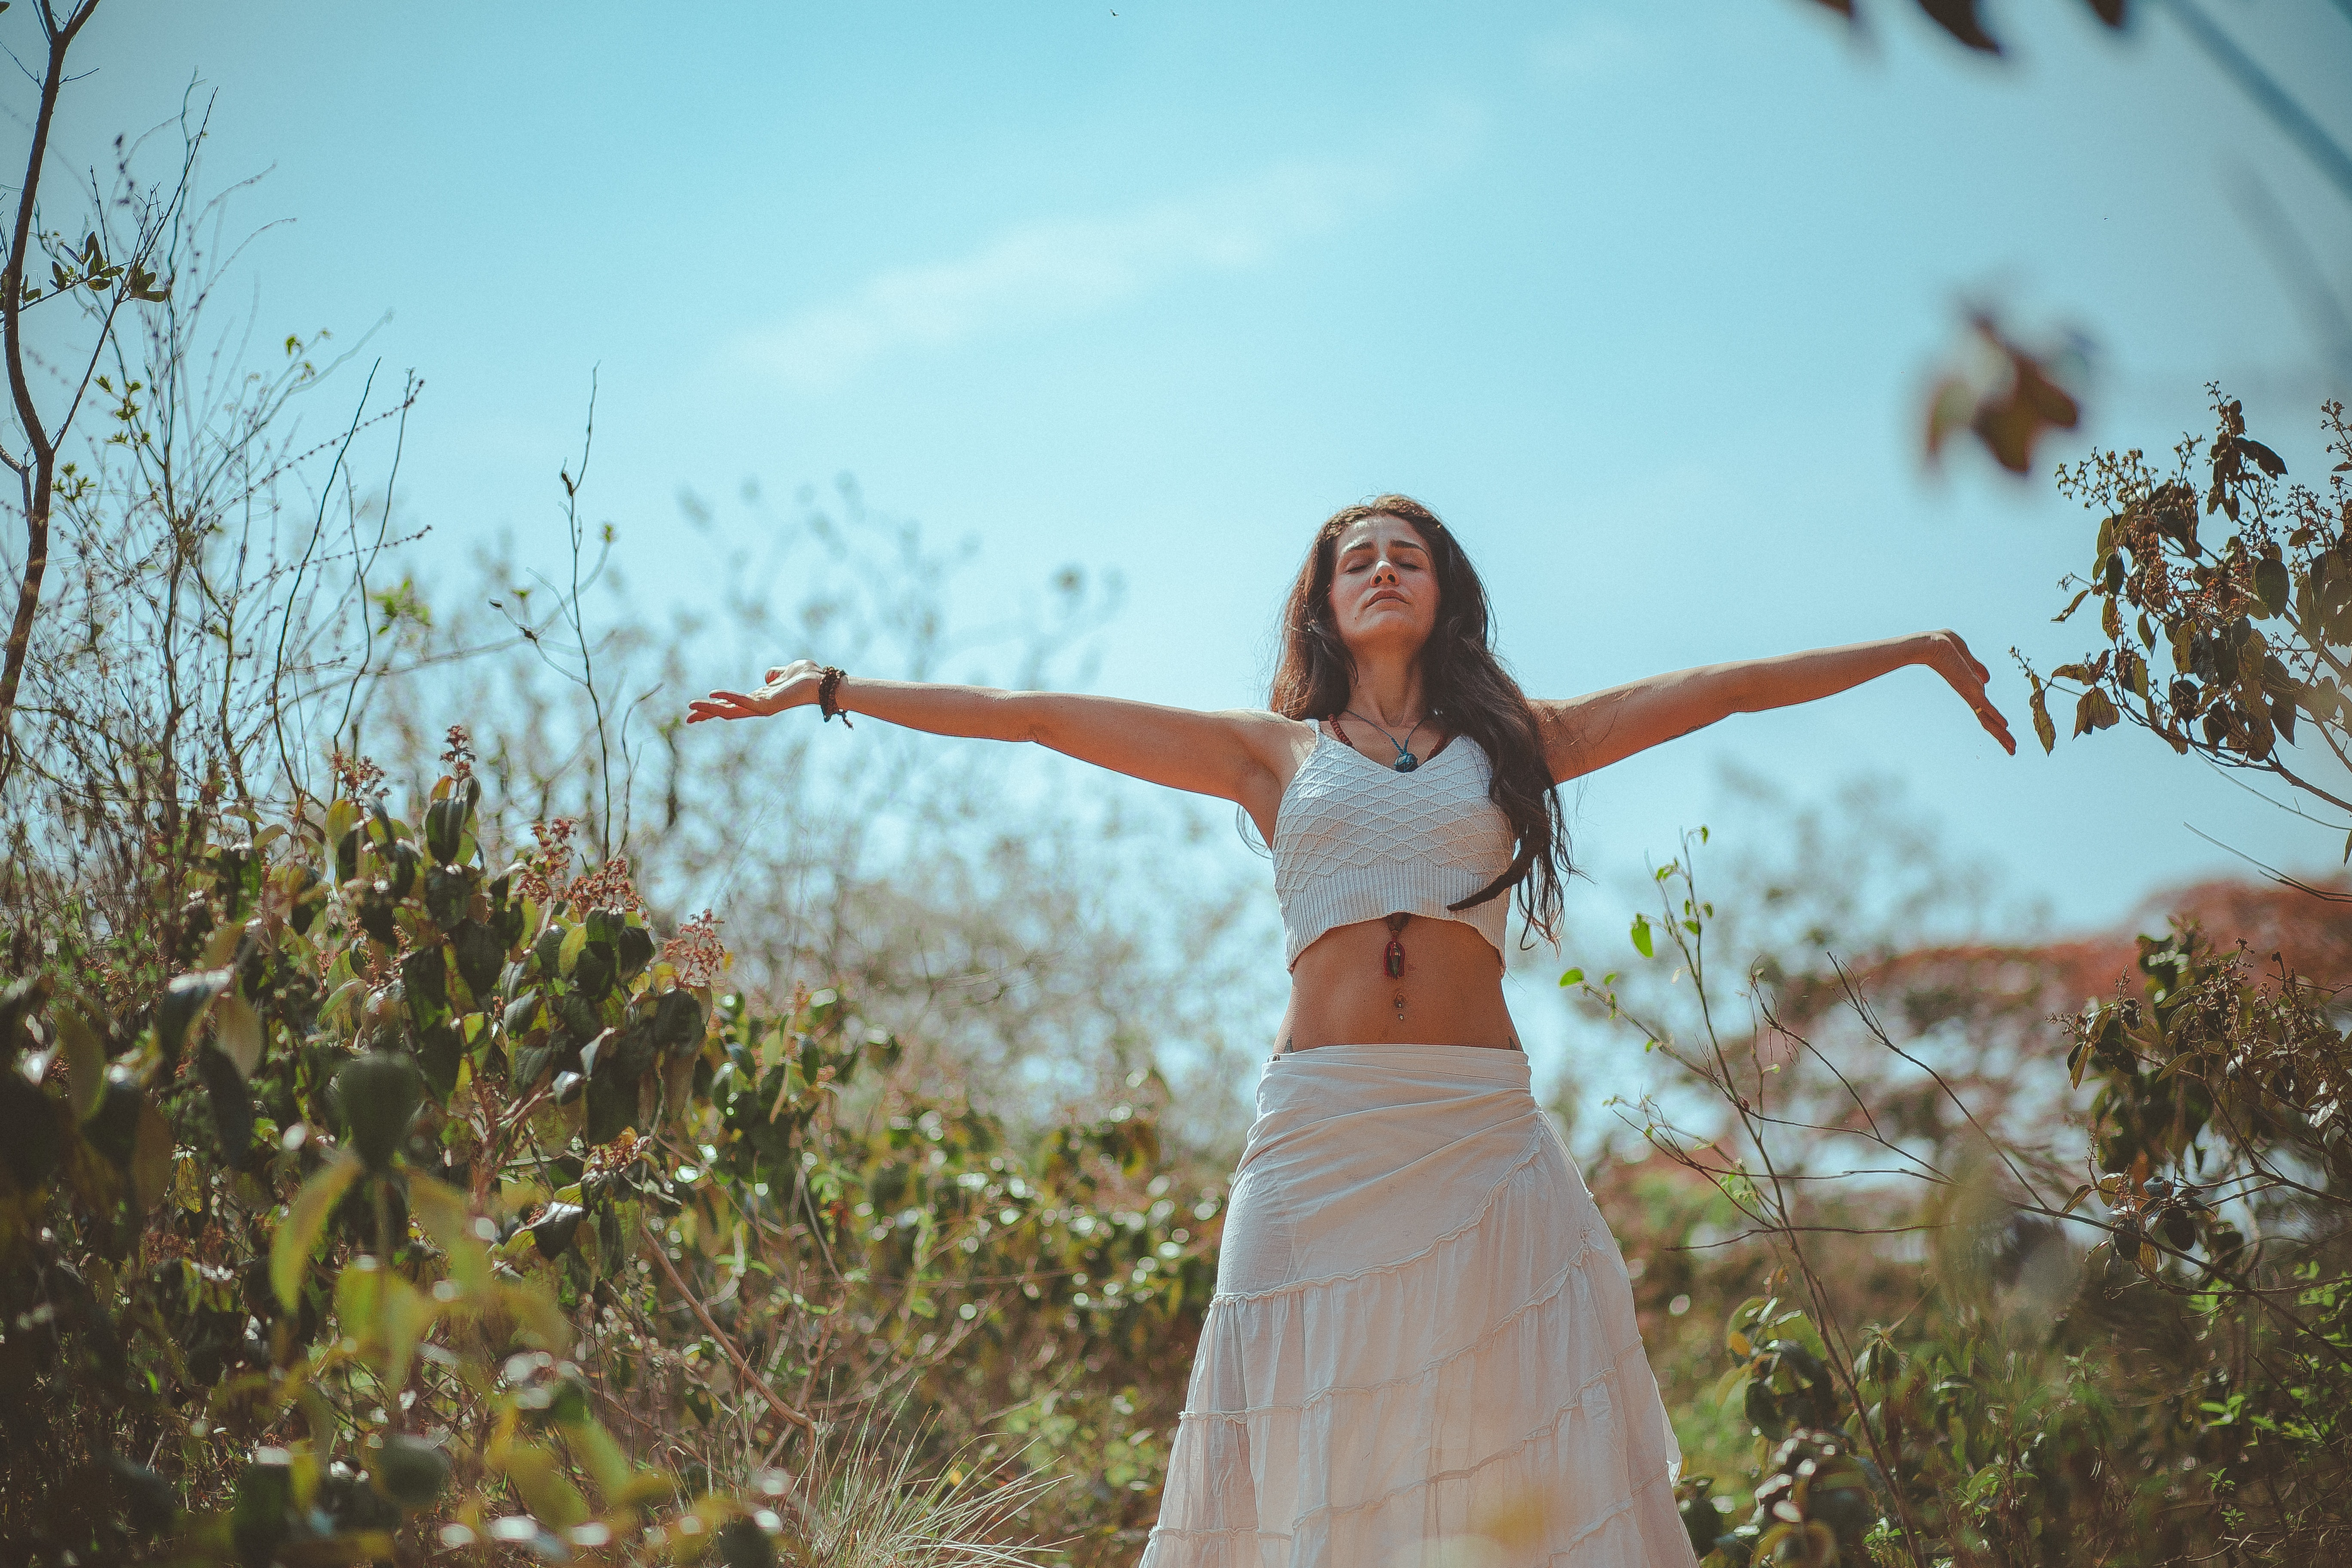 Free Spreading Pics woman spreading both her arms · free stock photo